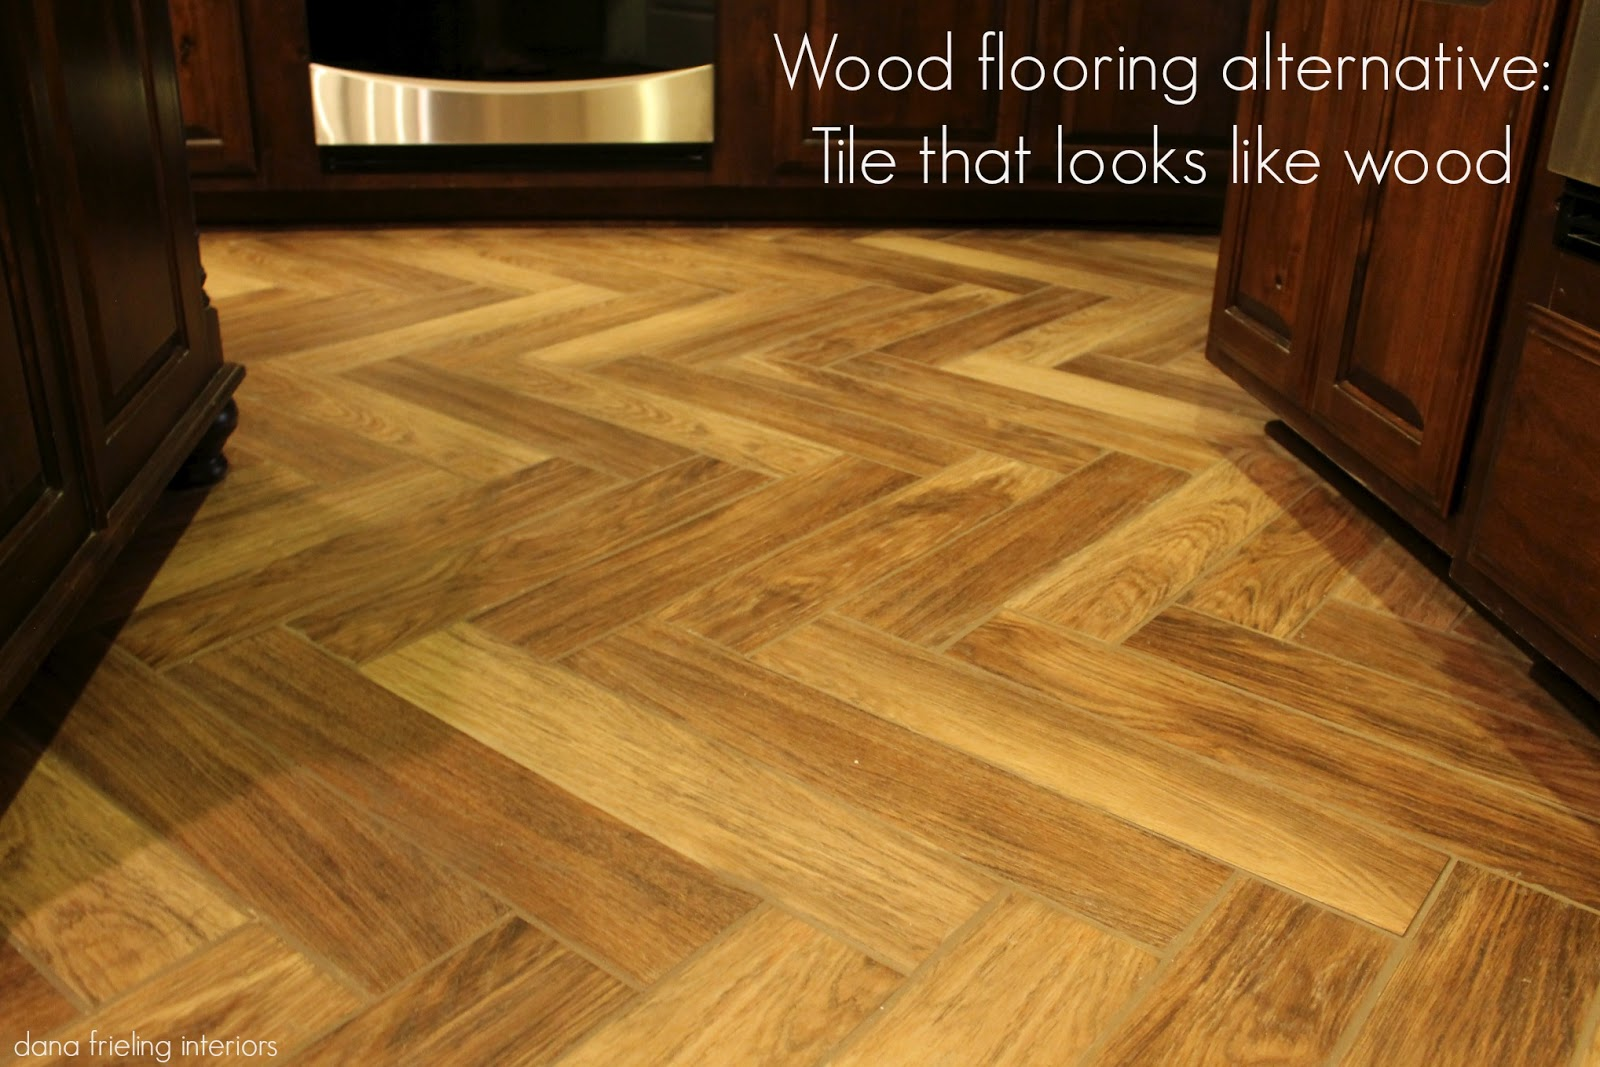 make them wonder another wood floor alternative